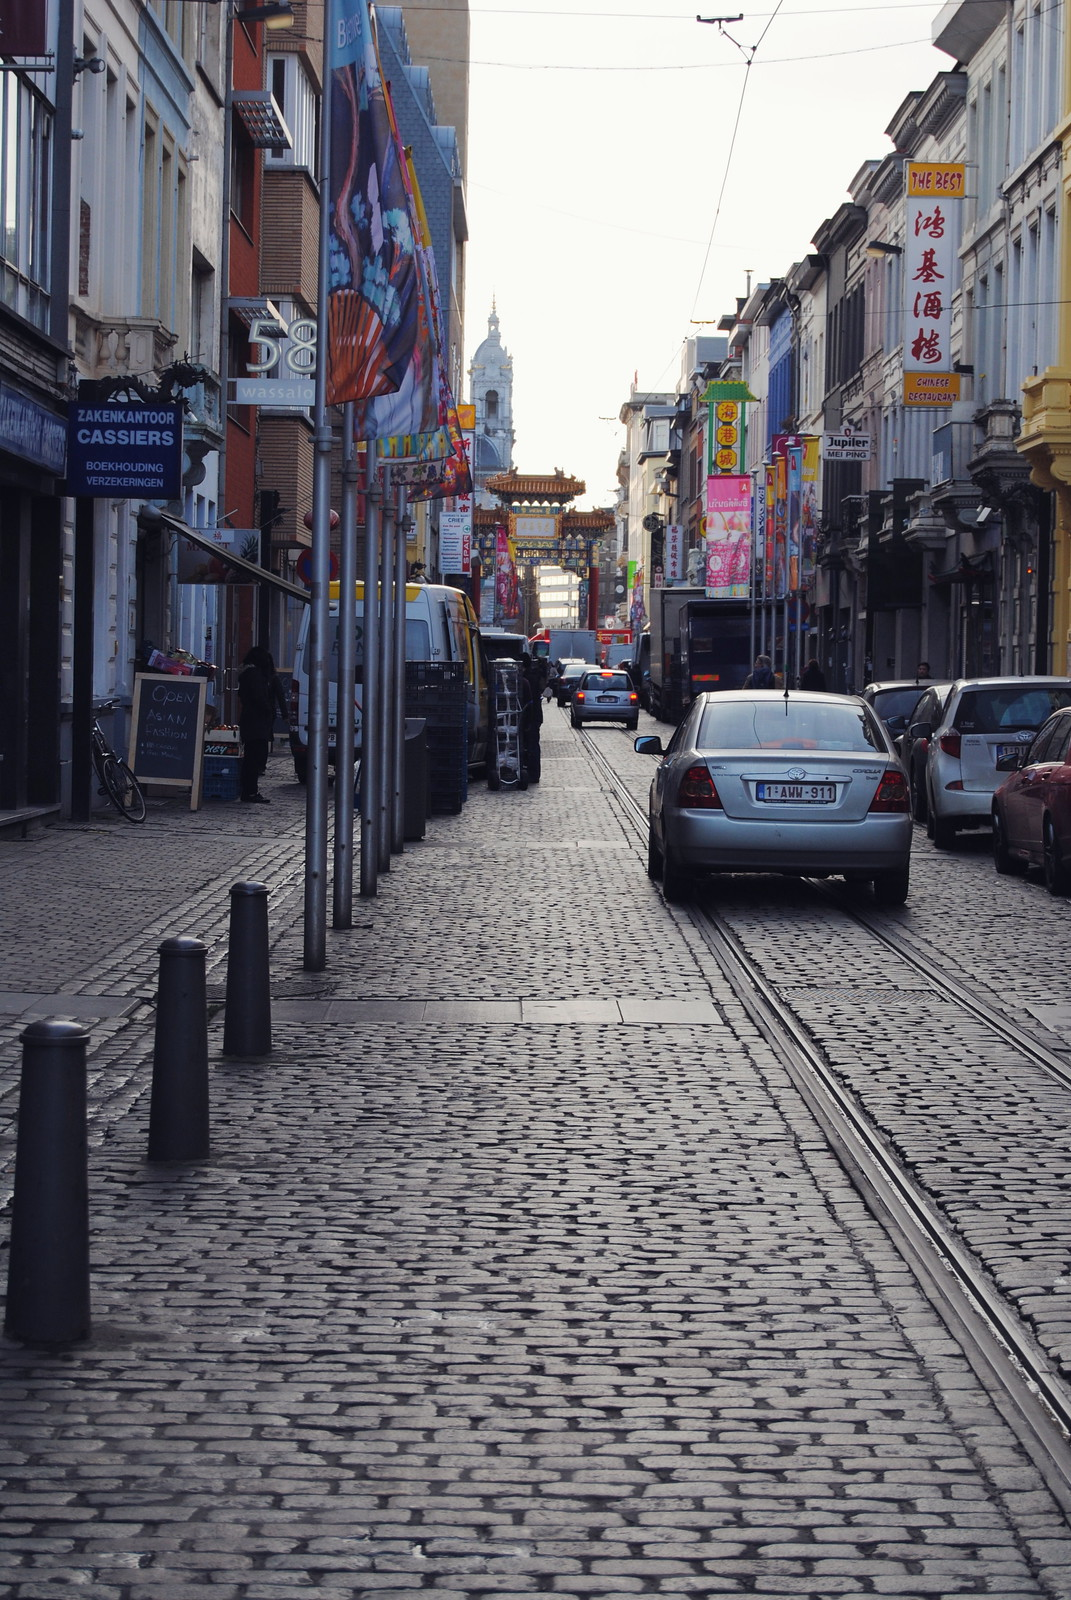 A street view of Antwerp's Chinatown.